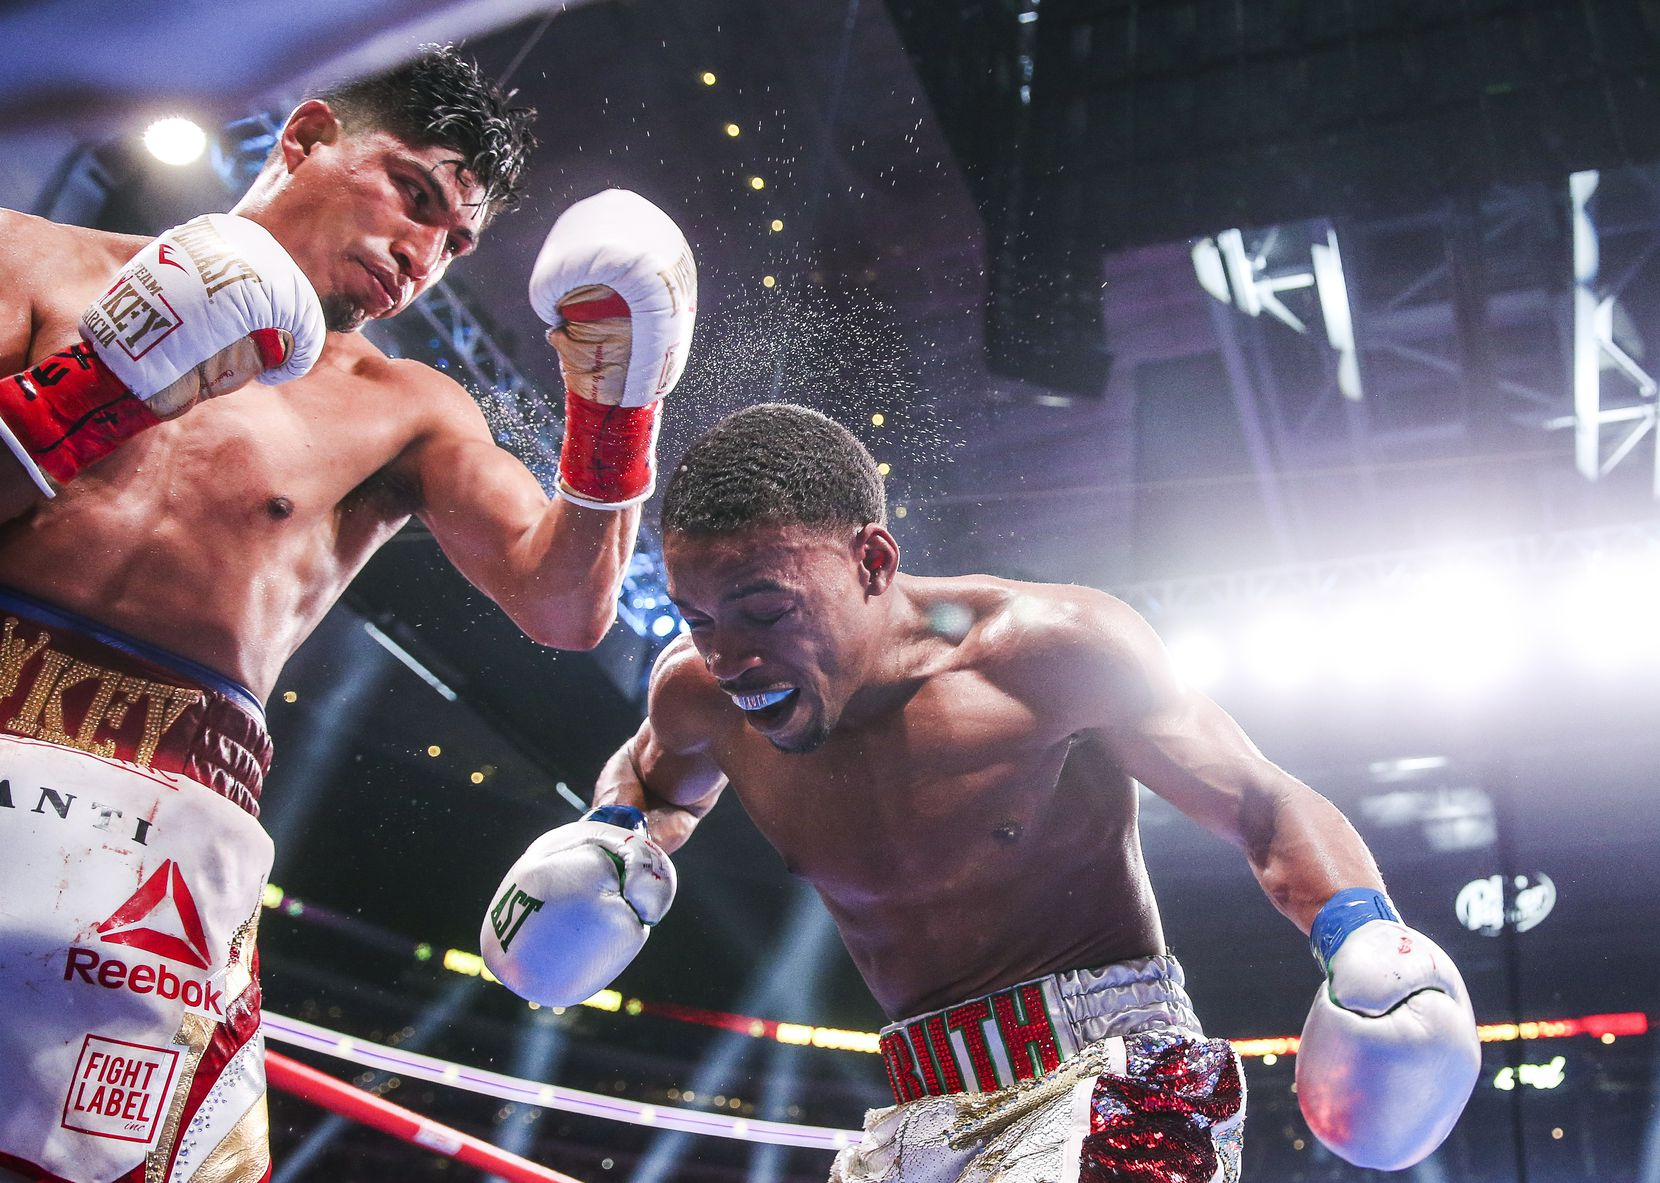 Mikey Garcia lands a shot on Errol Spence Jr. during a IBF World Welterweight Championship match on March 16, 2019, at AT&T Stadium in Arlington. Spence beat Garcia by decision.